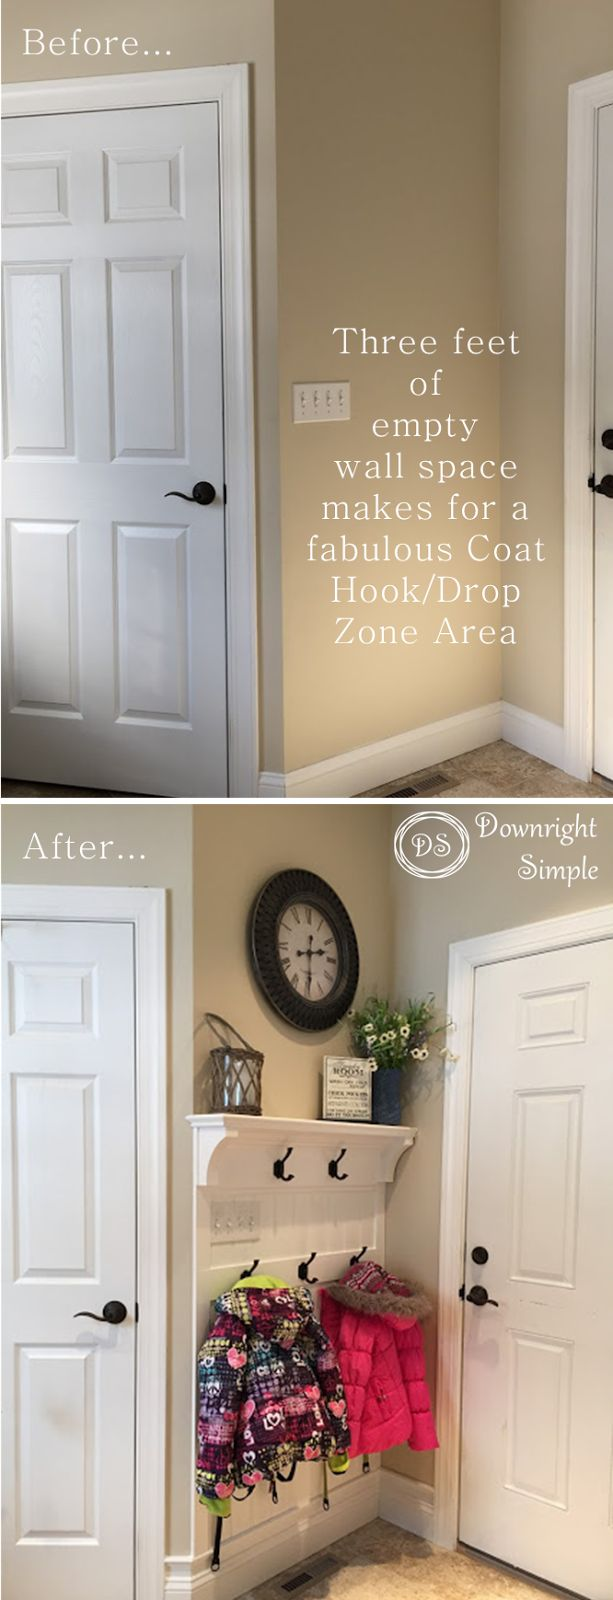 best 20 decorating small spaces ideas on pinterest small downright simple mudroom entryway maximizing a small space